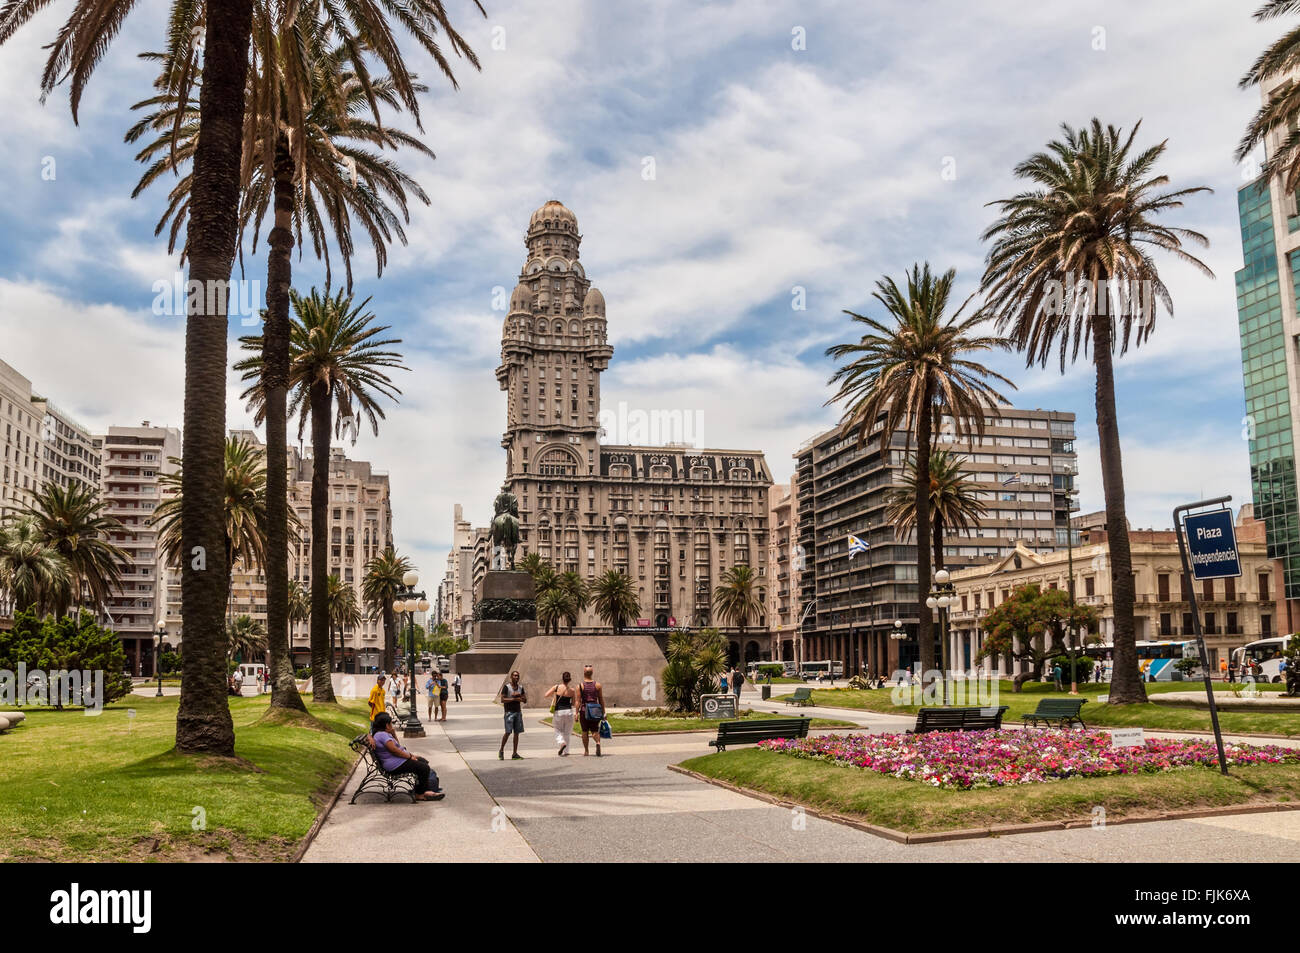 plaza-indepedencia-with-the-building-pal